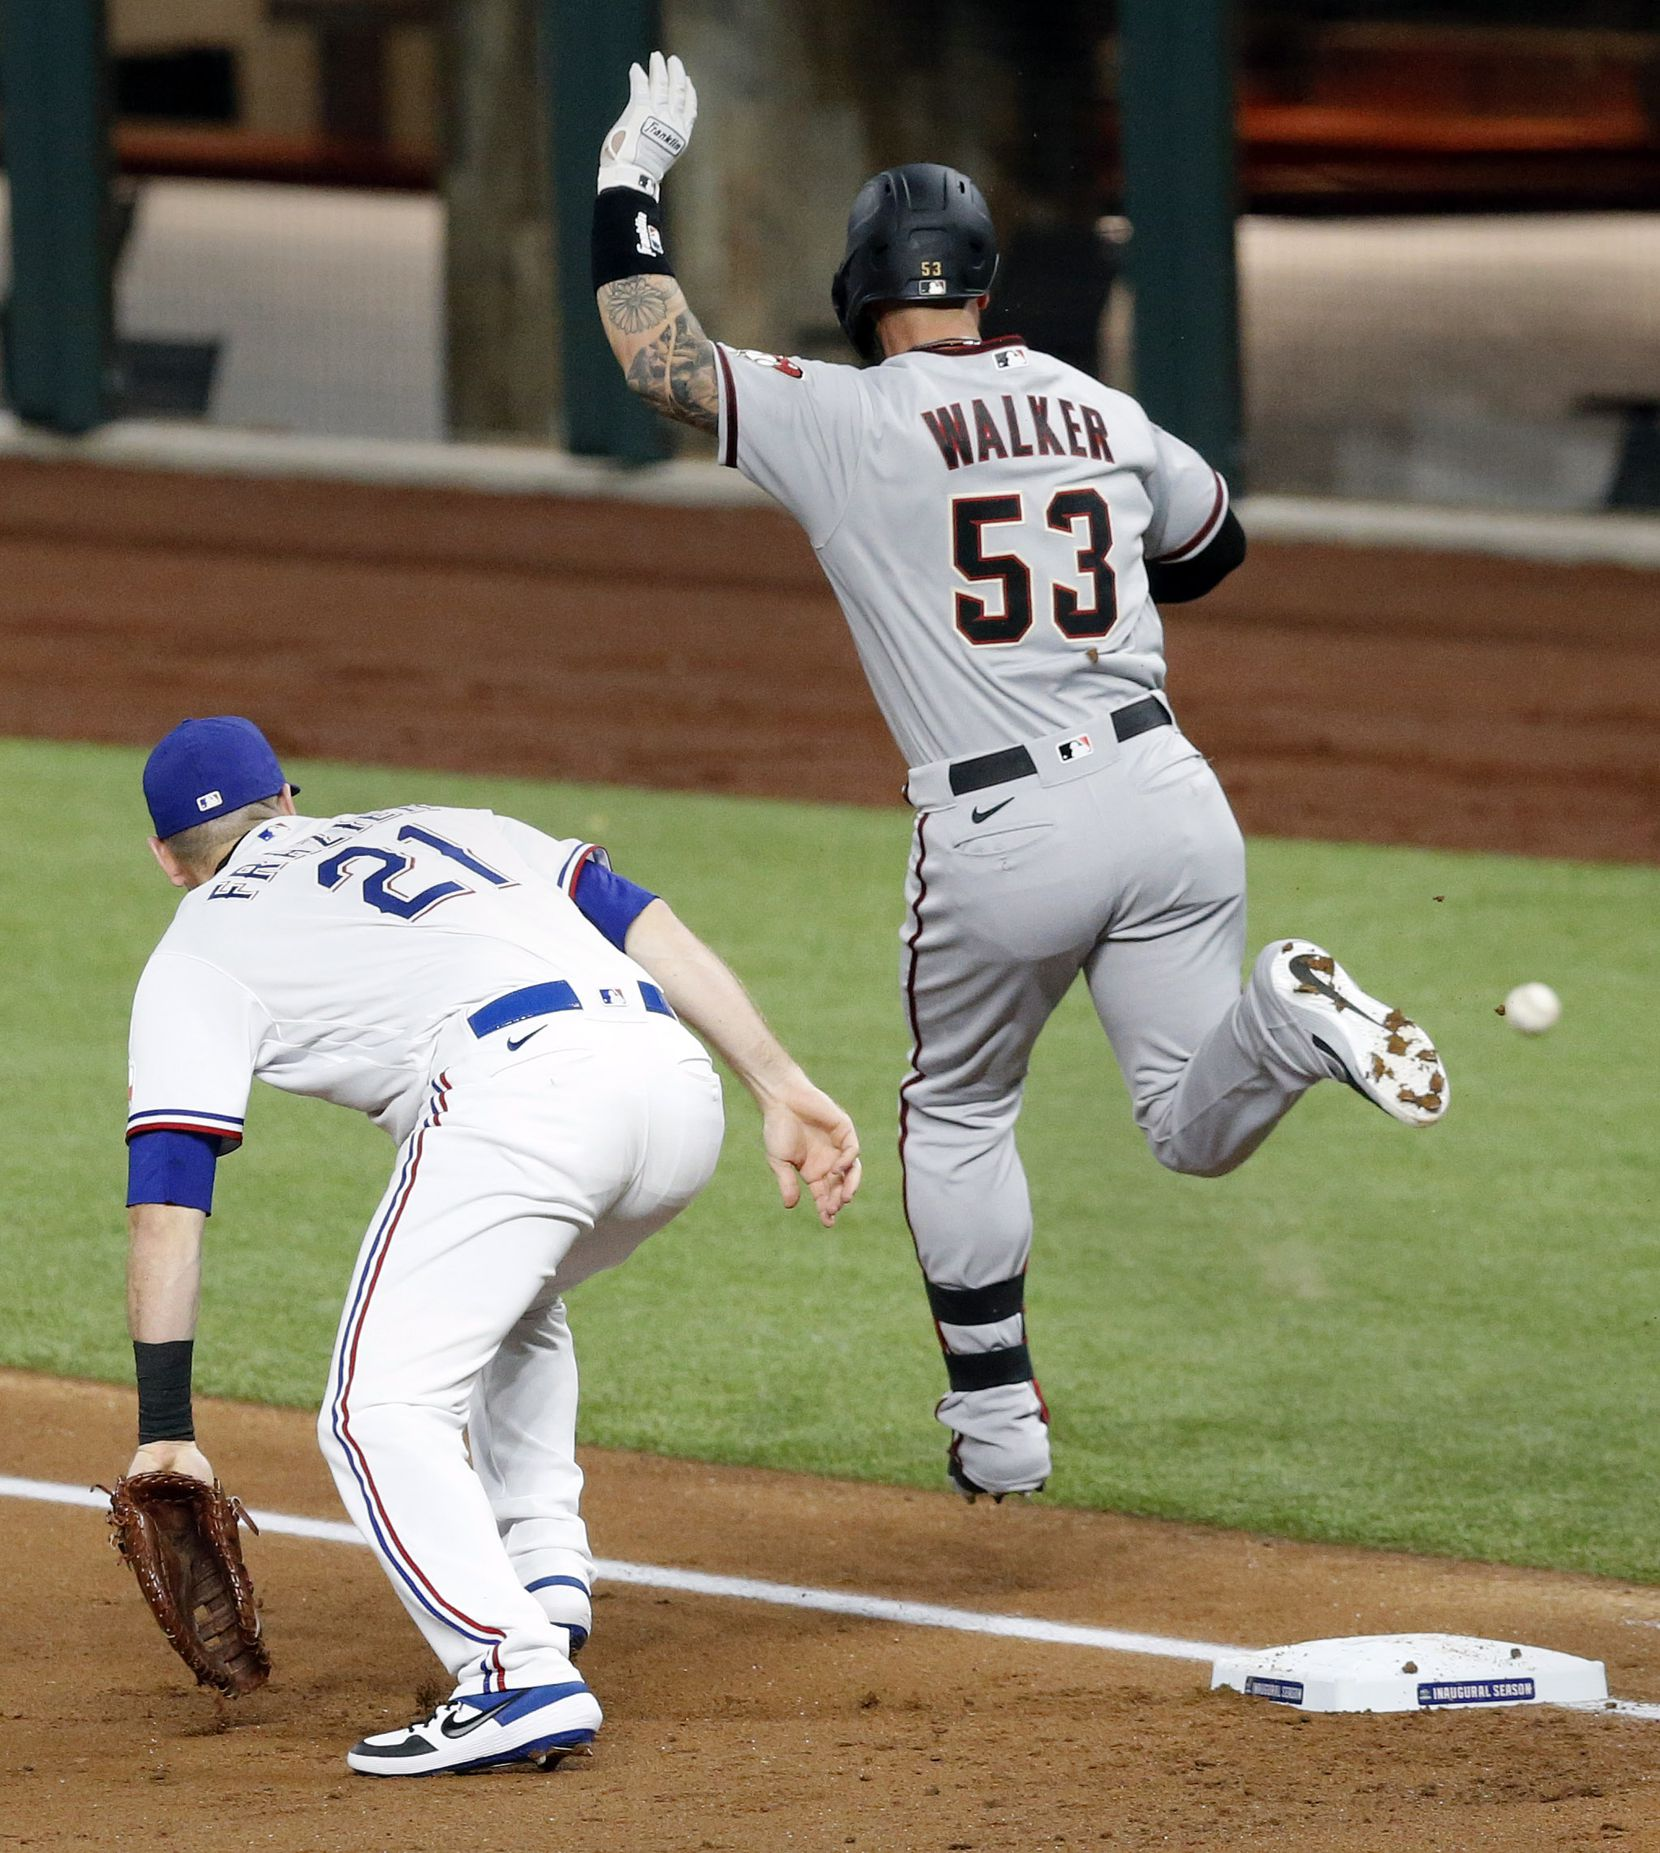 The ball gets away from Texas Rangers first baseman Todd Frazier (21) on a throw from third baseman Isiah Kiner-Falefa (9) during the first inning at Globe Life Field in Arlington, Texas, Tuesday, July 28, 2020. Walker advanced second as two runs scored. (Tom Fox/The Dallas Morning News)